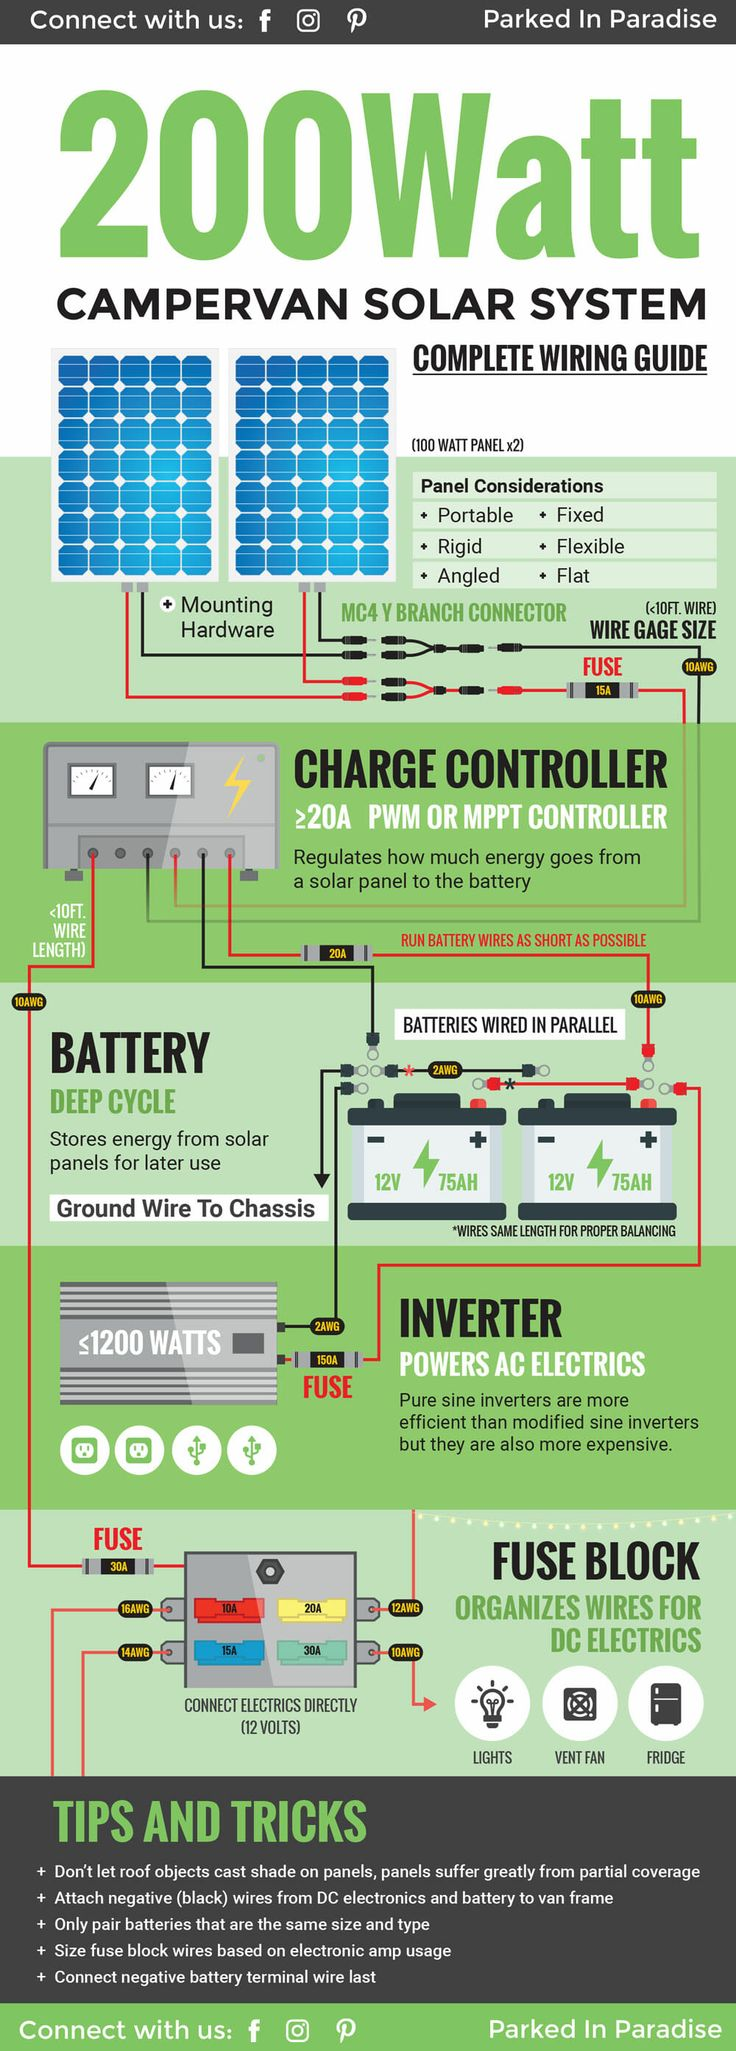 136 Best Solar Wind Images On Pinterest Power Alternative Panel With Corrugated Thin Film Cells Wiring Panels In 200 Watt Van Setup Complete Diy Guide For